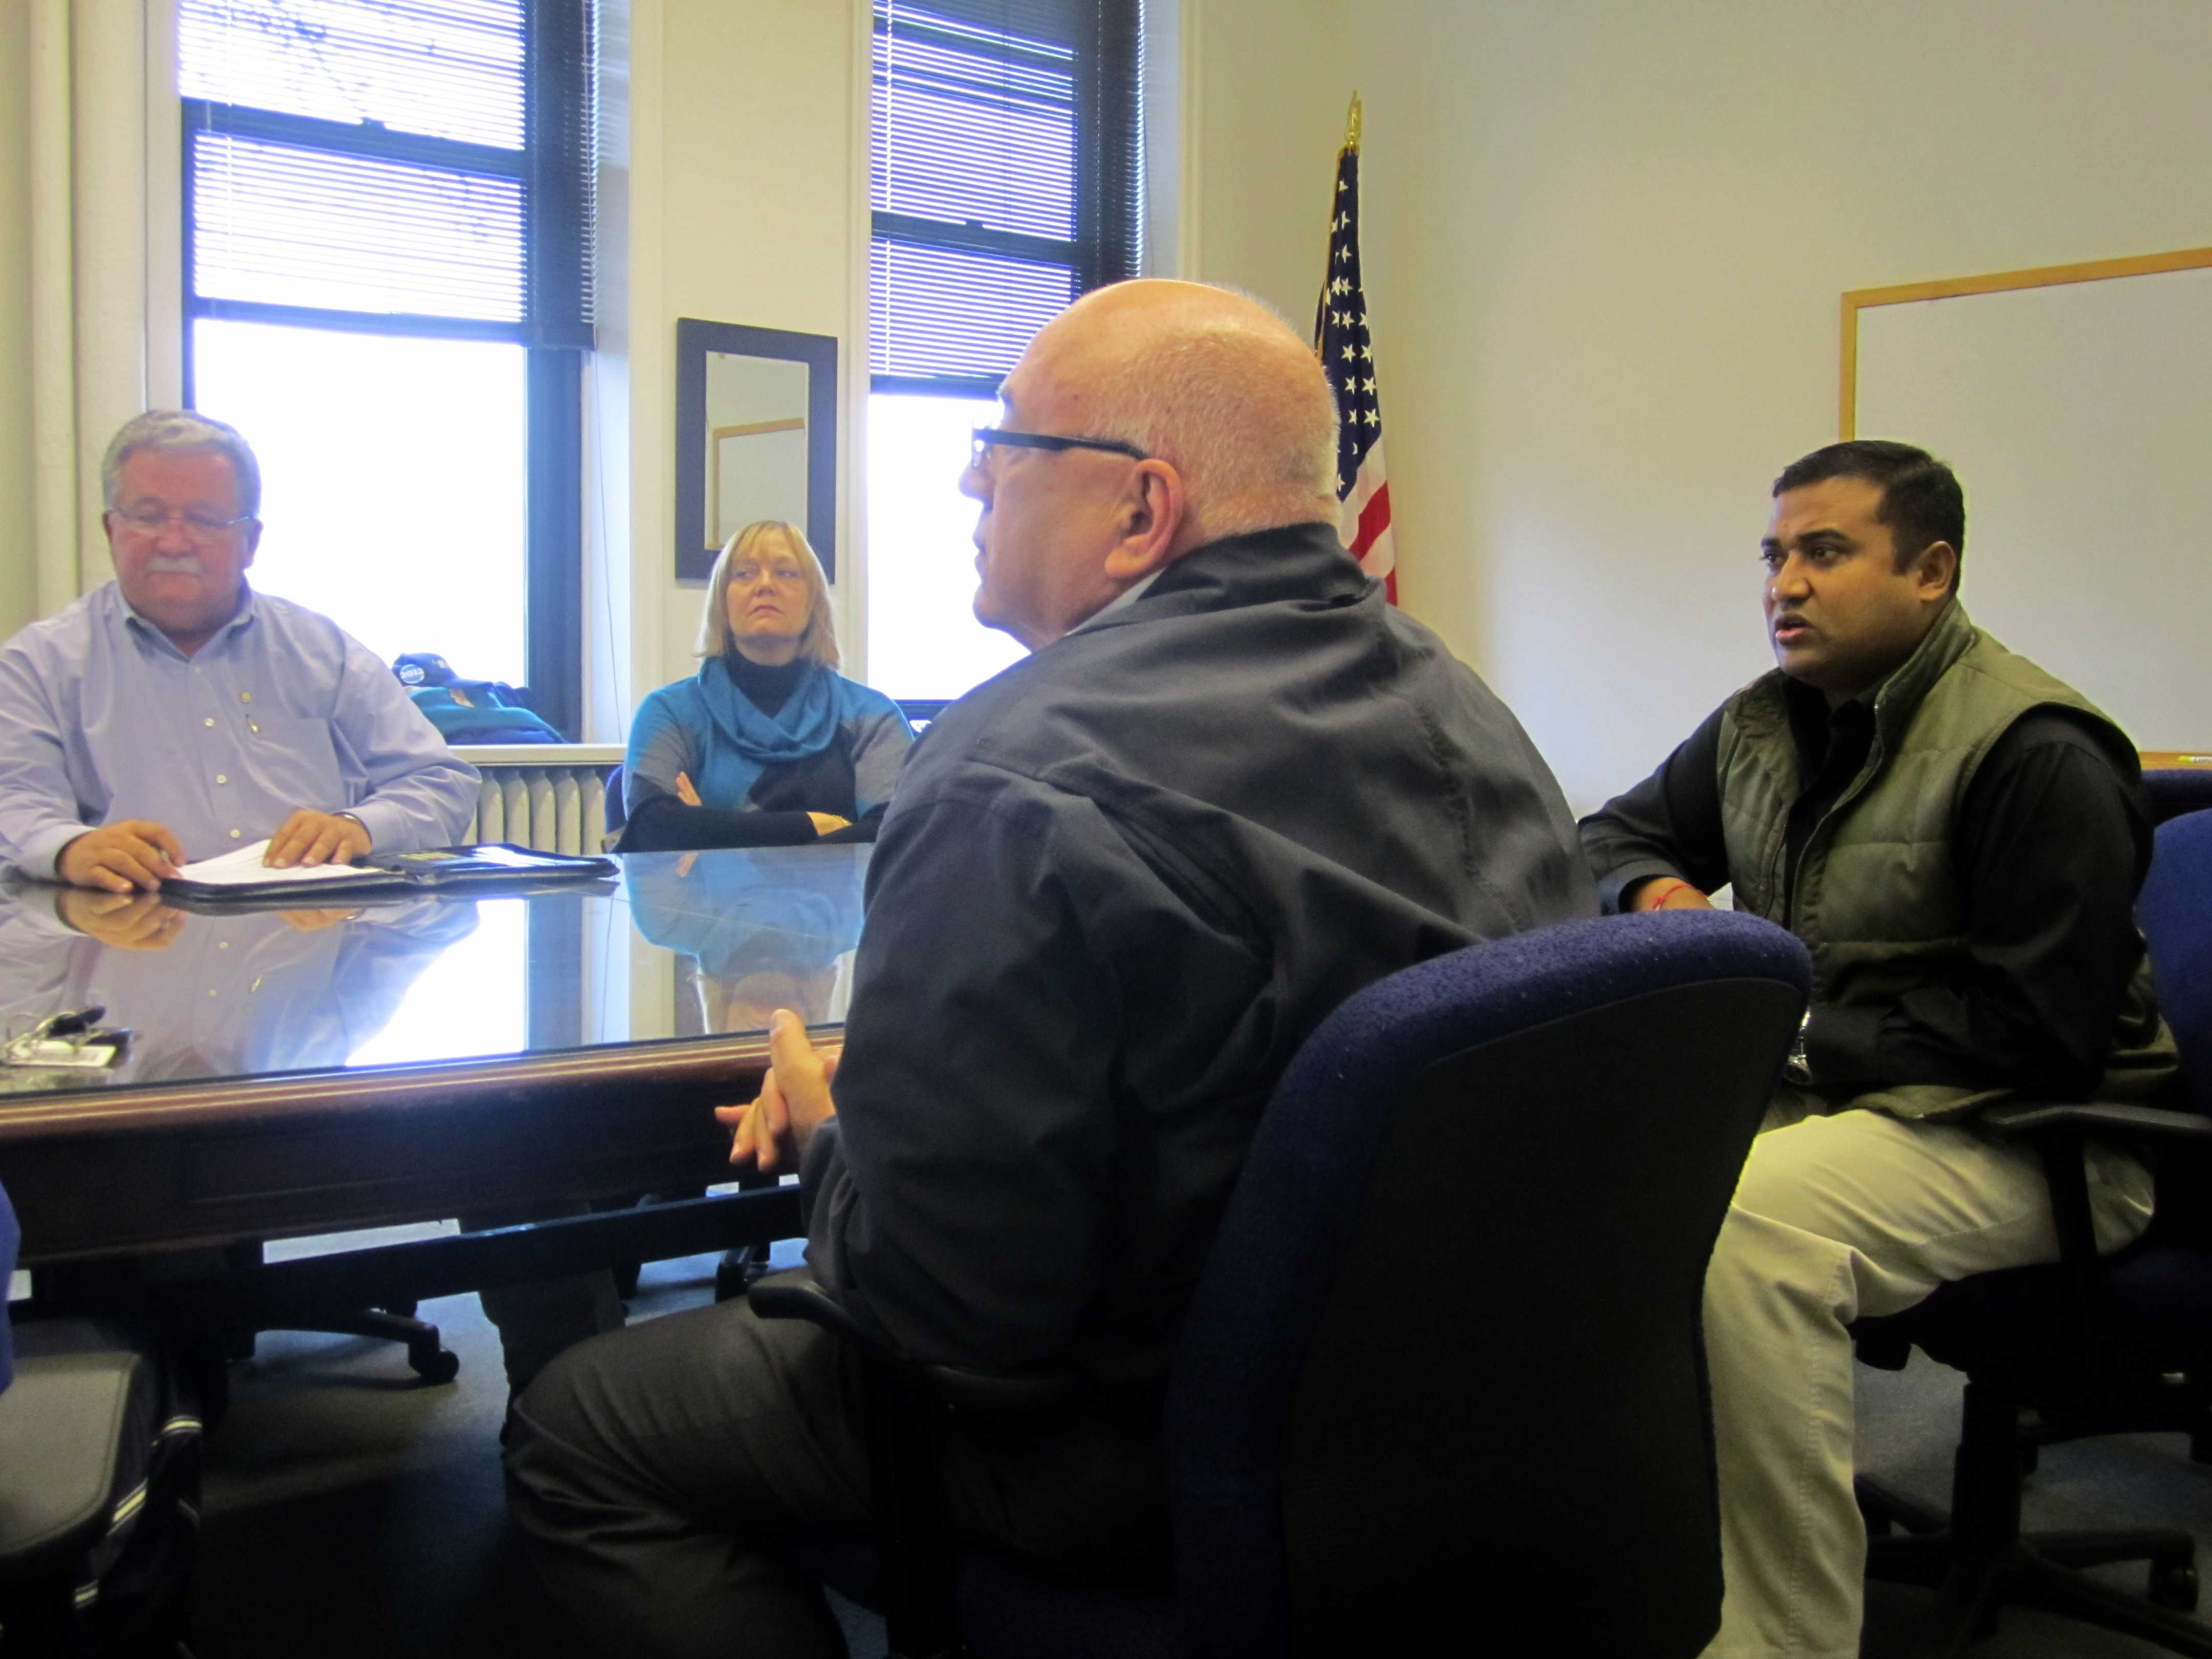 7-Eleven field consultant Mike Drop (second from right) and franchisee Prakash Mohanty (far right) state their case to the city's Liquor Control Board for serving alcoholic beverages at Mohanty's store on Emerson Street.